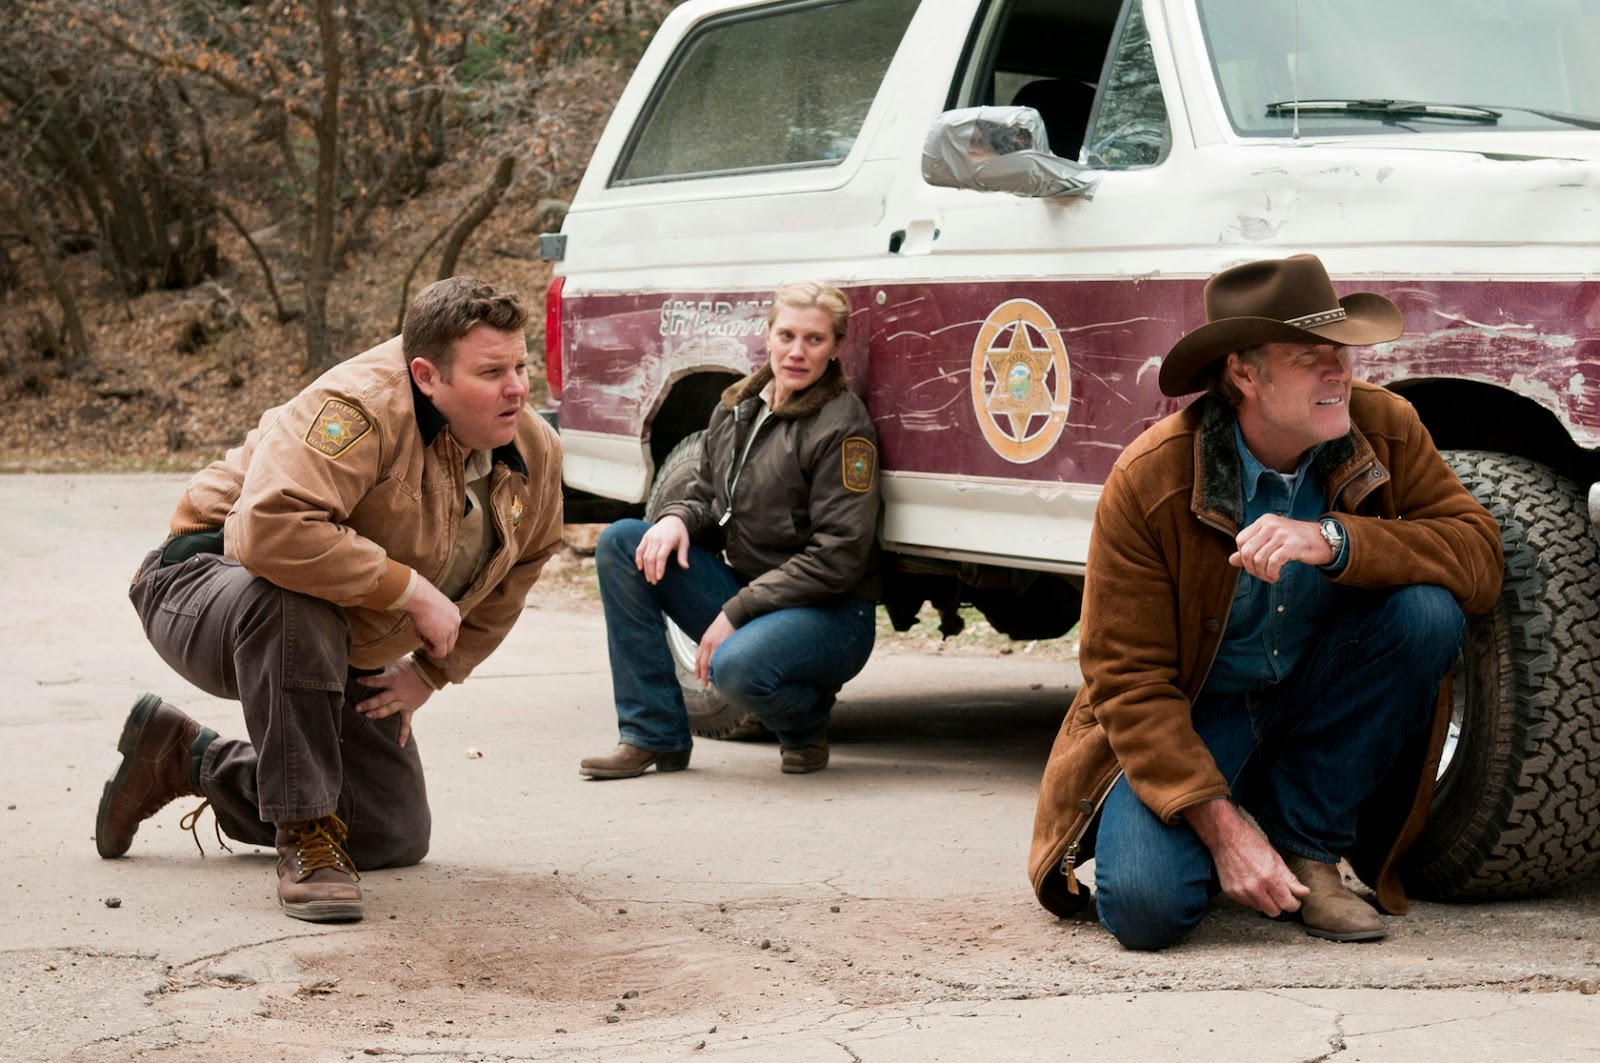 'Longmire': seasons 1 and 2 coming to DVD/Blu-ray